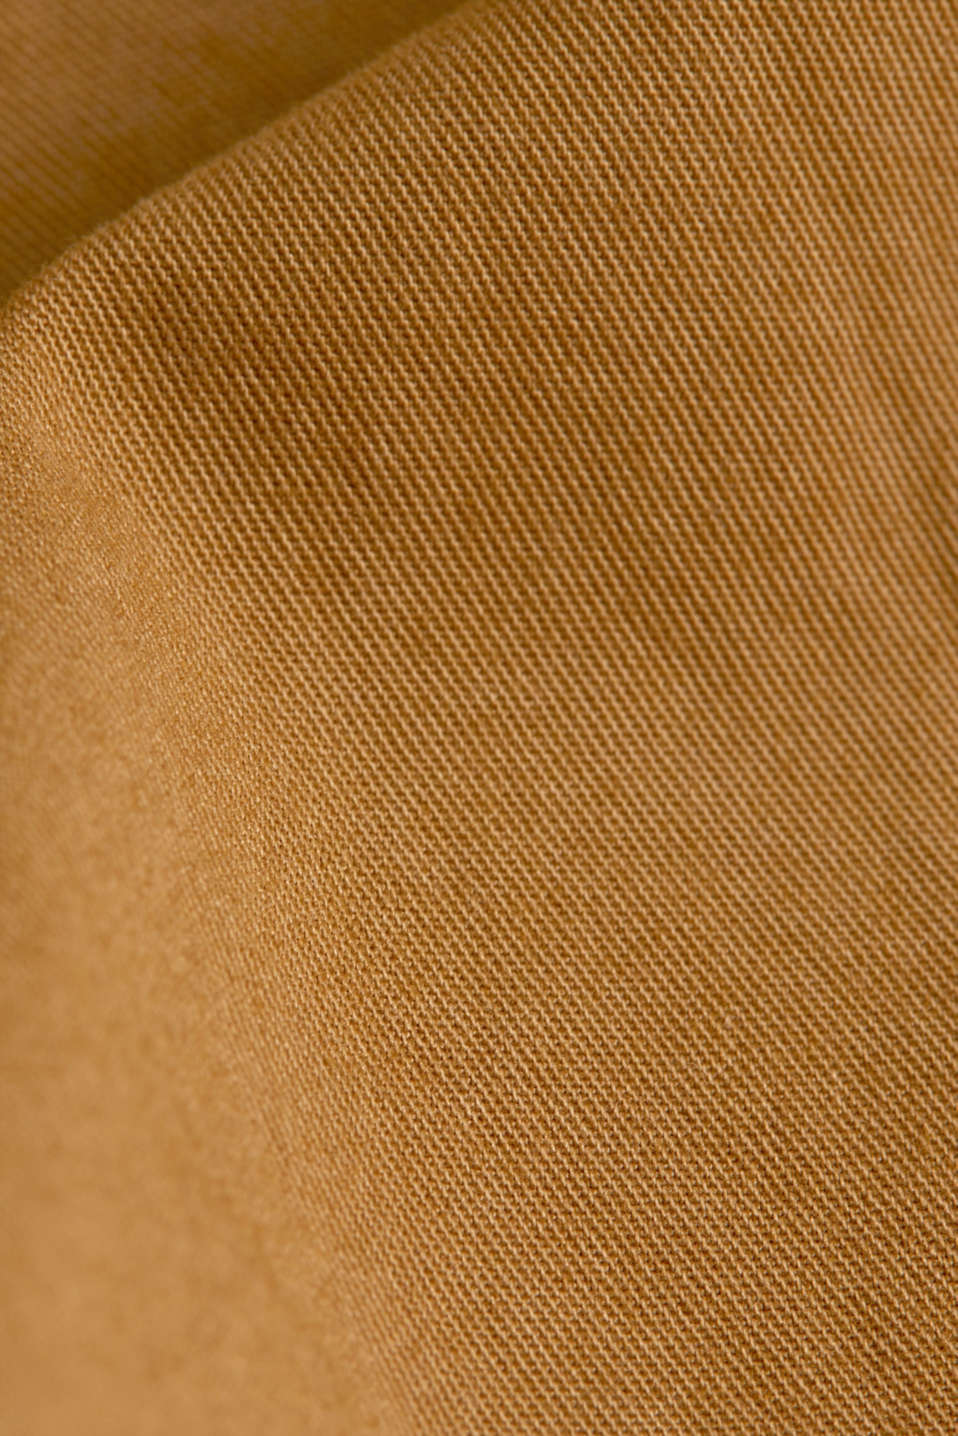 shorts in 100% cotton, CAMEL 2, detail image number 4